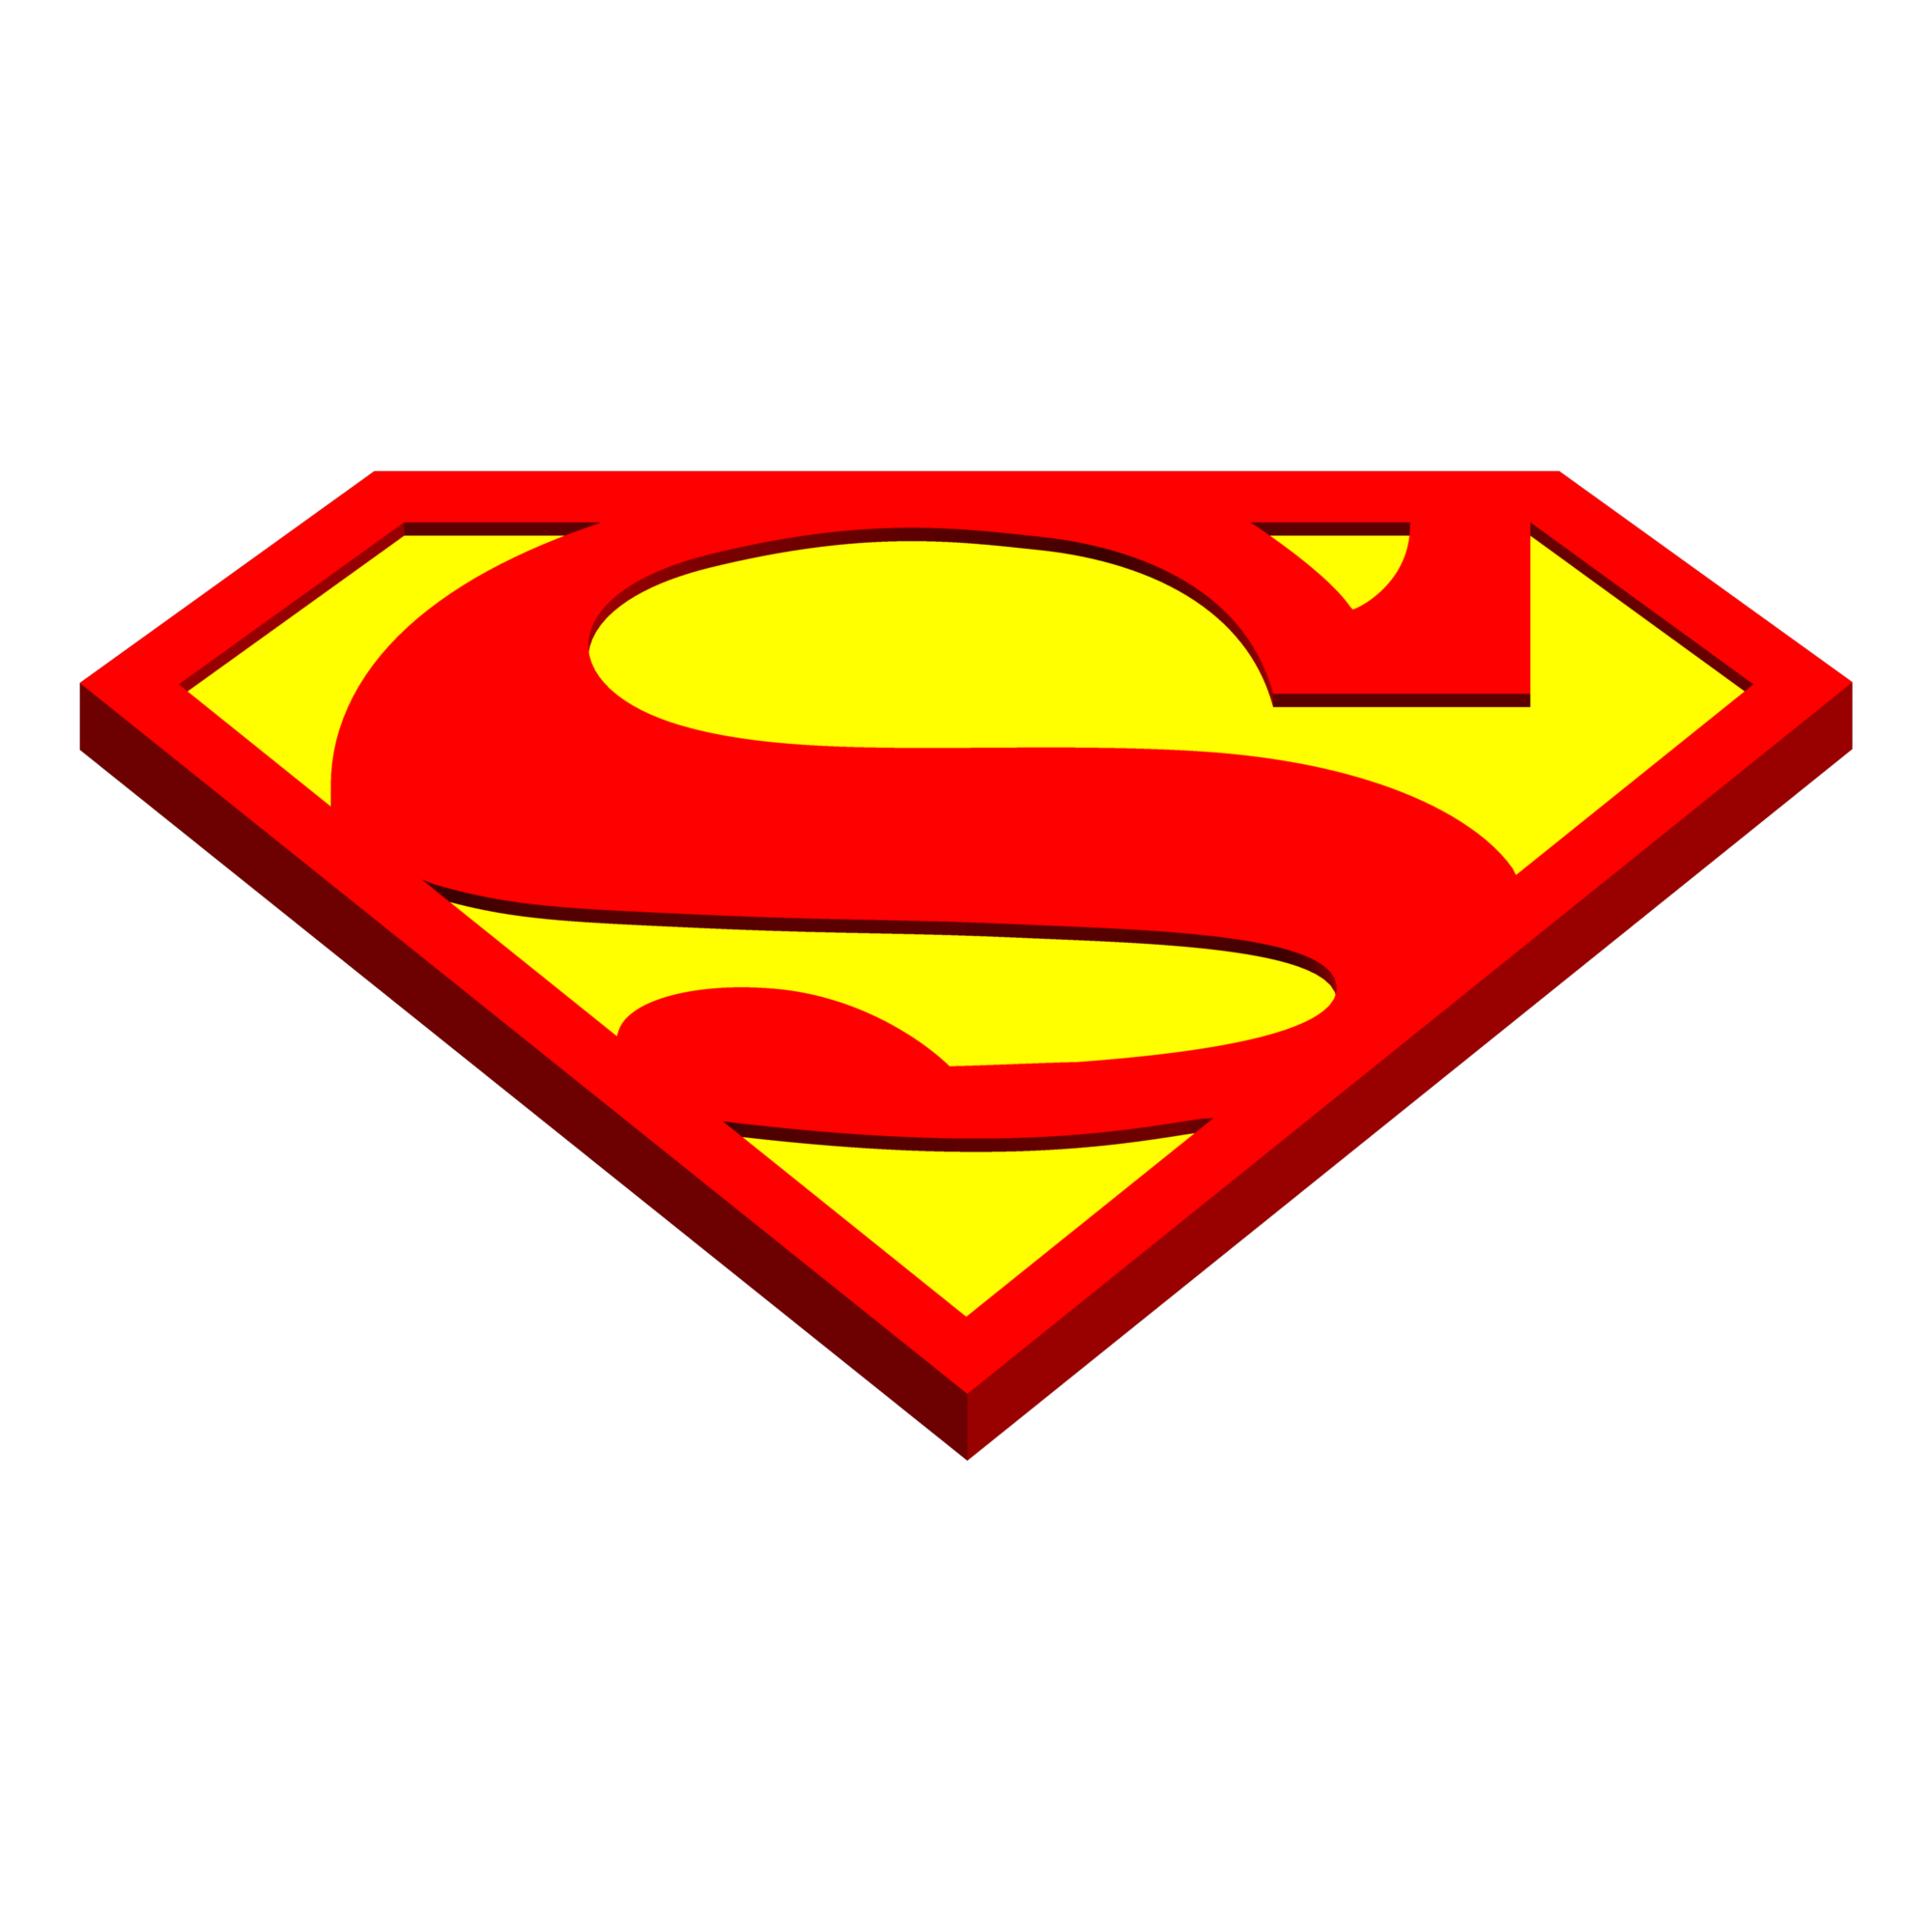 Superman logo .png. Clipart at getdrawings com